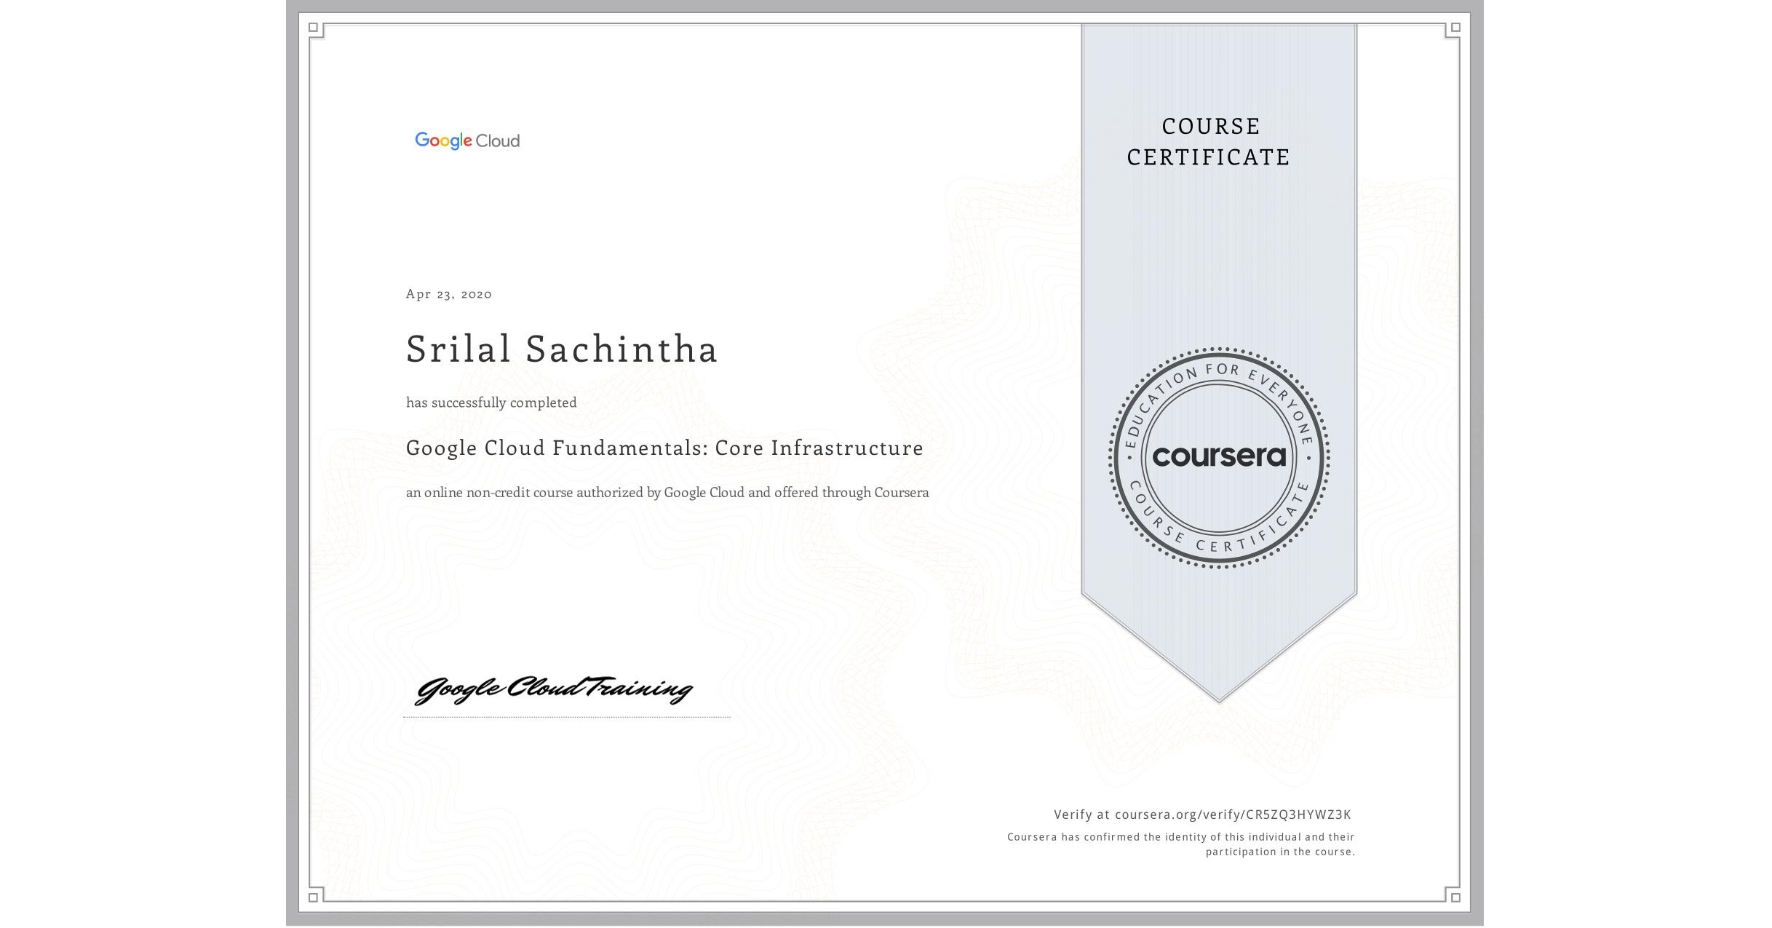 View certificate for Srilal Sachintha, Google Cloud Fundamentals: Core Infrastructure, an online non-credit course authorized by Google Cloud and offered through Coursera